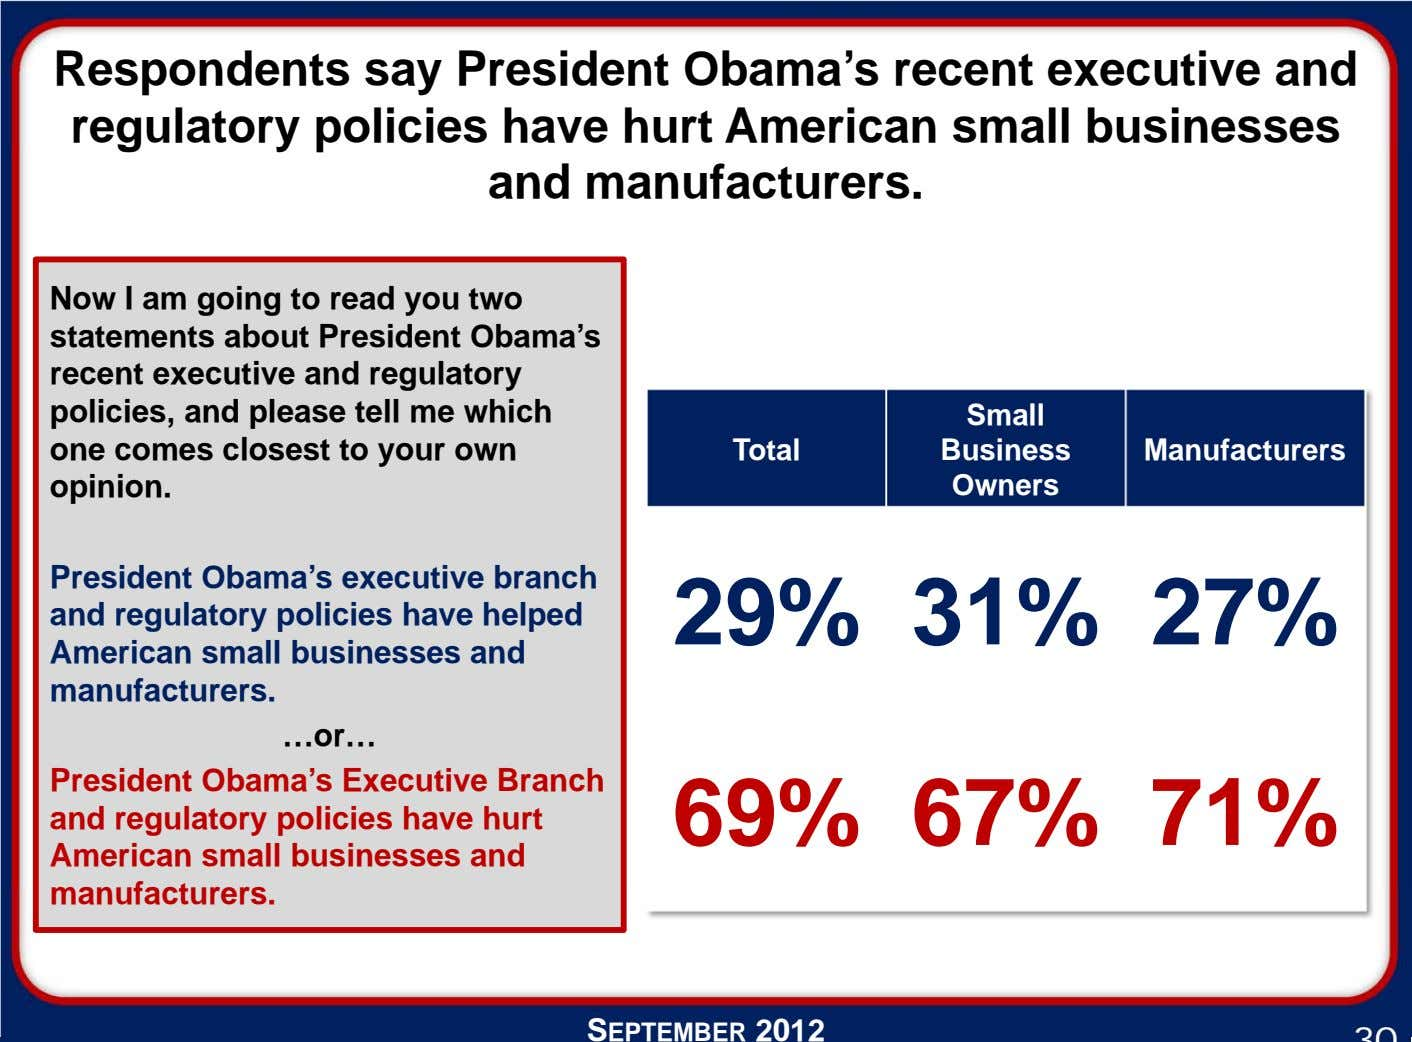 Respondents say President Obama's recent executive and regulatory policies have hurt American small businesses and